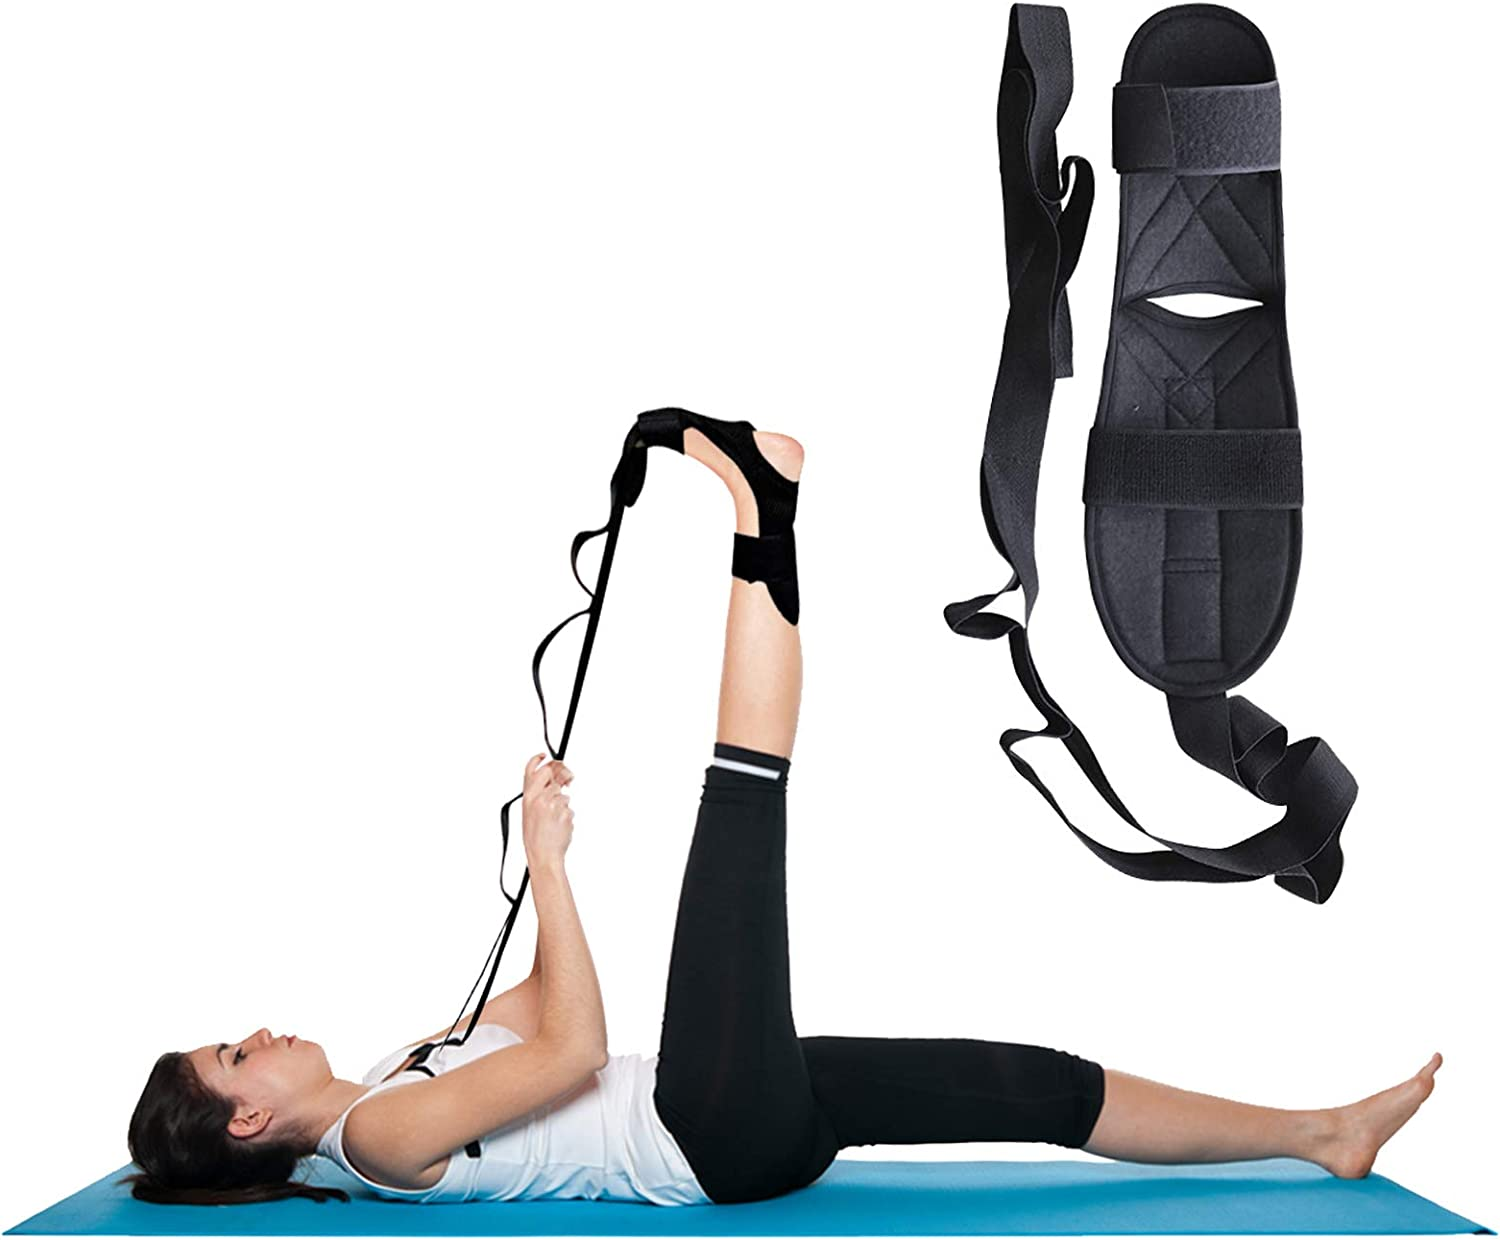 Geebuzz Fitness Yoga Stretching Strap Nonelastic Leg Foot Ligament Stretcher Flexibility Balance Stretch Strap Belt with Loops for Hamstring Plantar Fasciitis Rehabilitation Physical Therapy Dancers